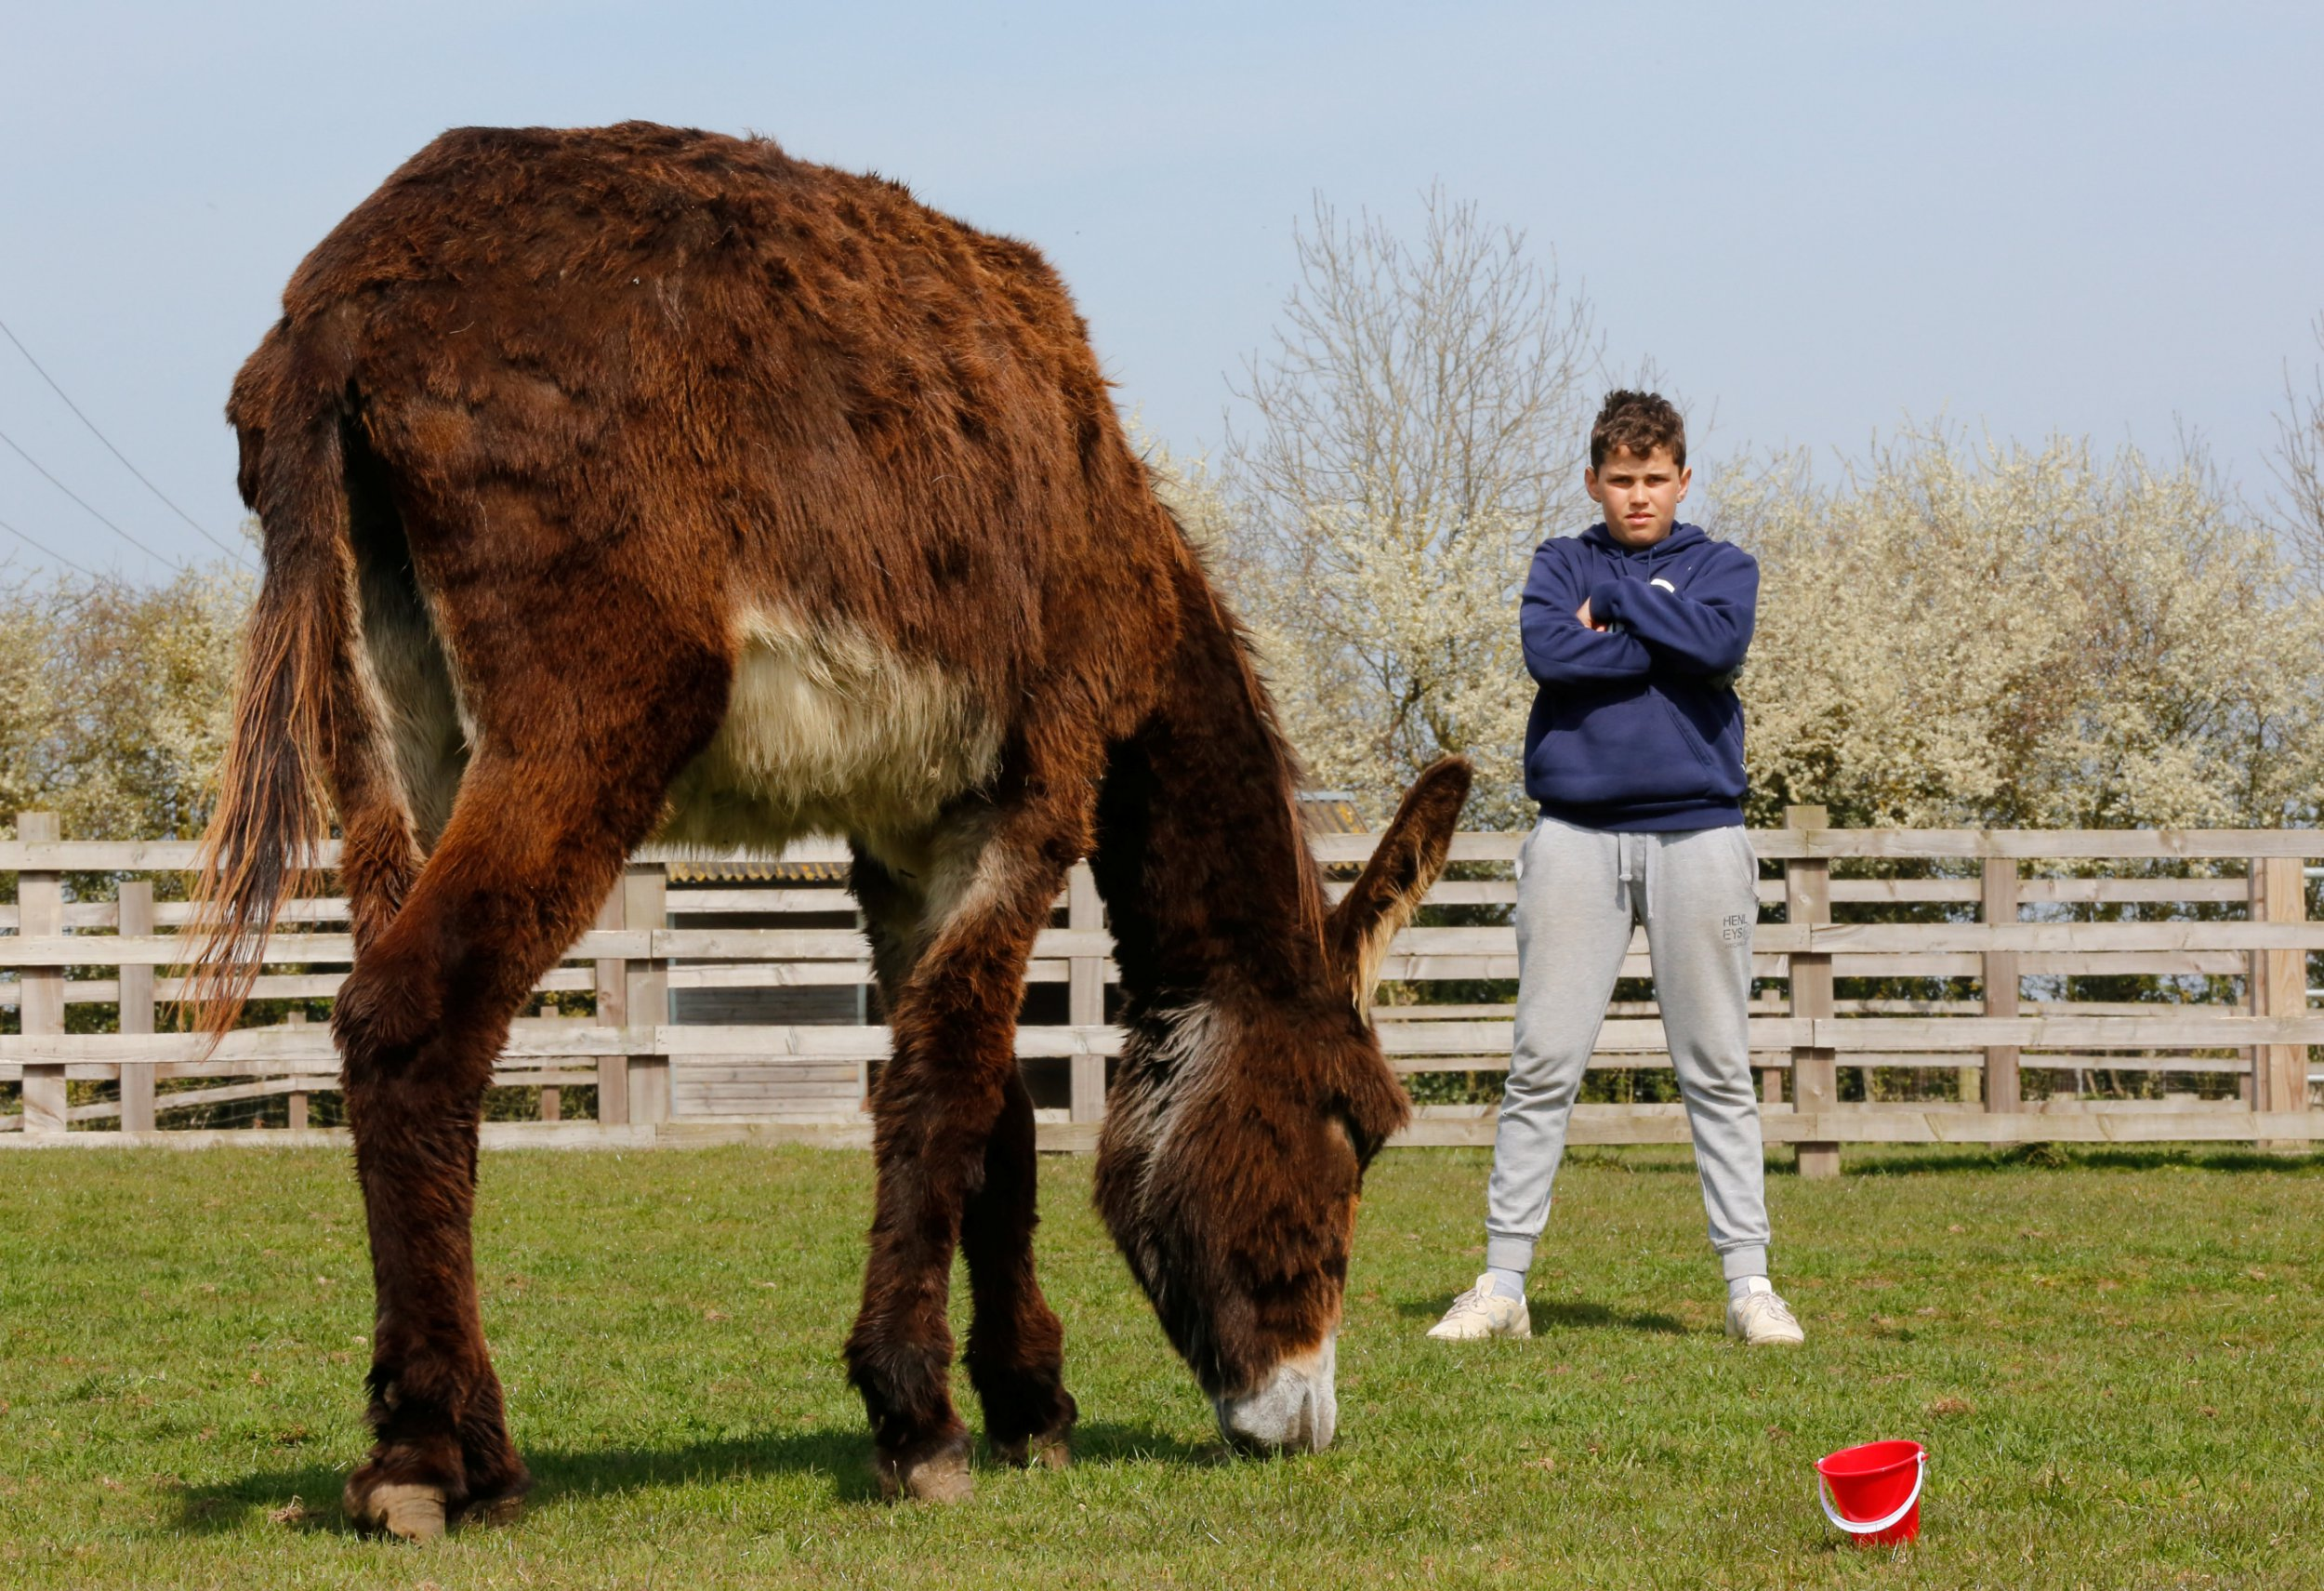 Extremely large donkey Derrick could become a world record holder